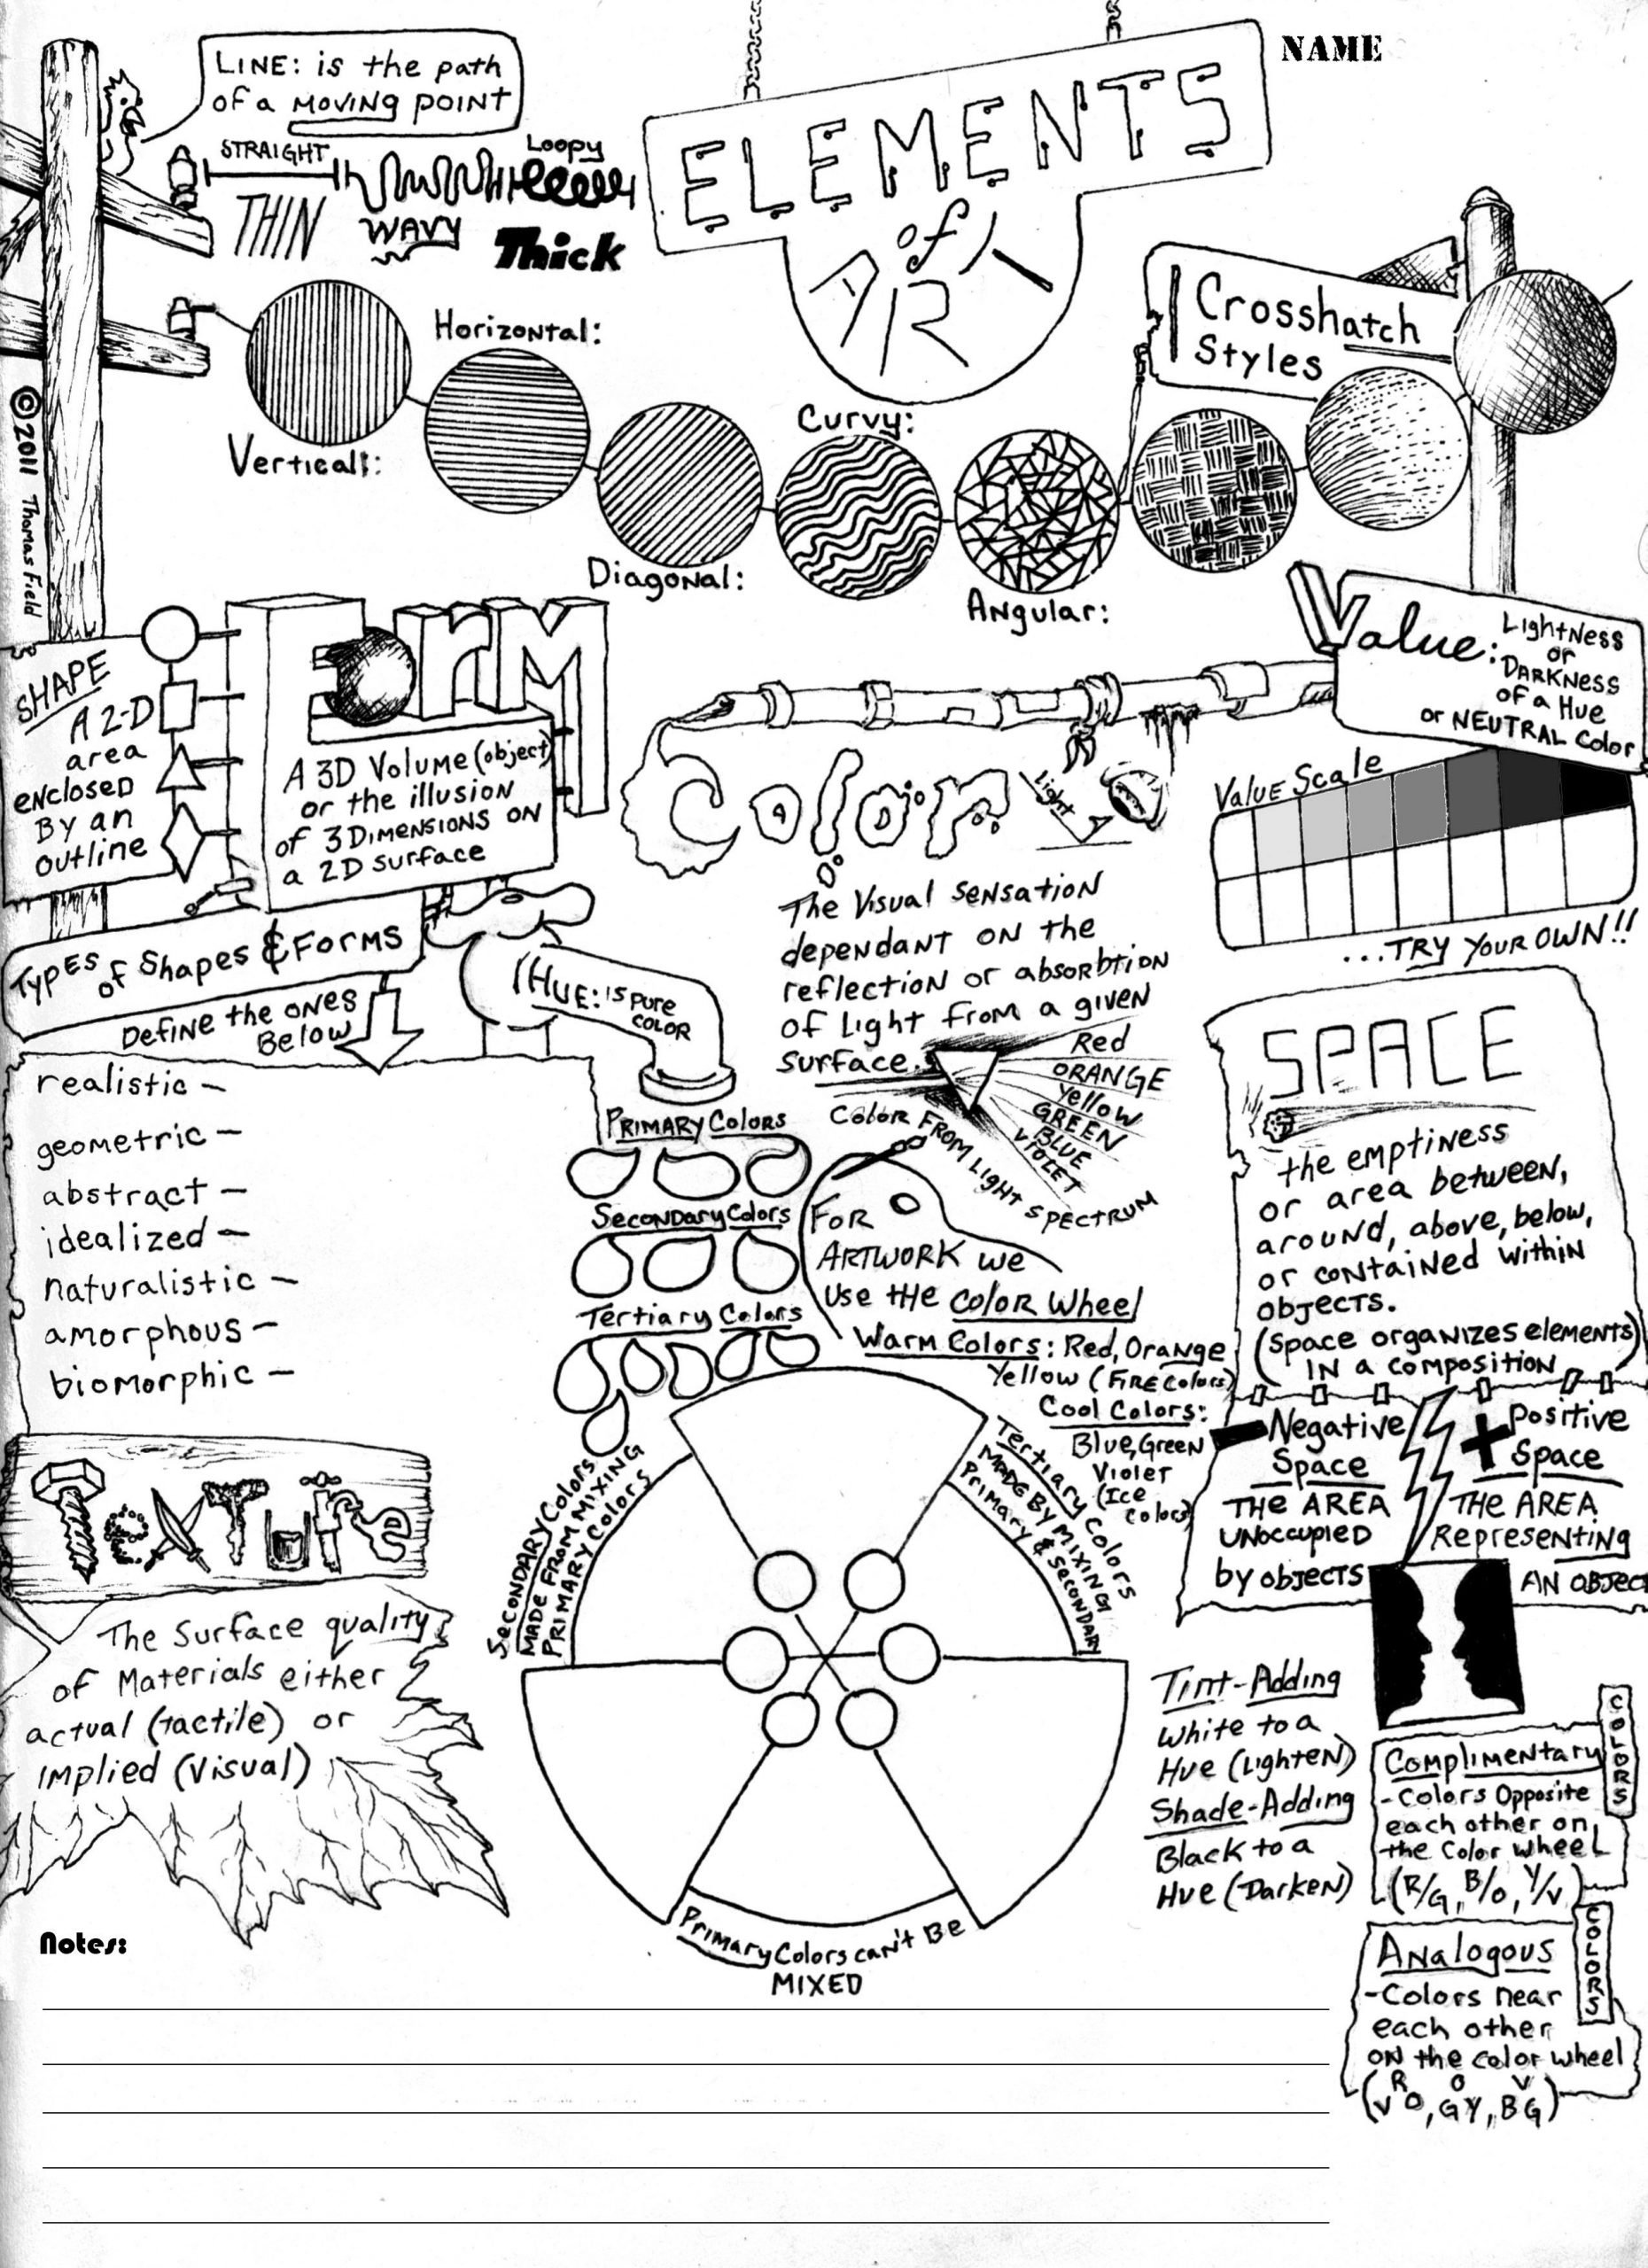 Art Worksheets Middle School Wksht Elementsofart002 2550—3509